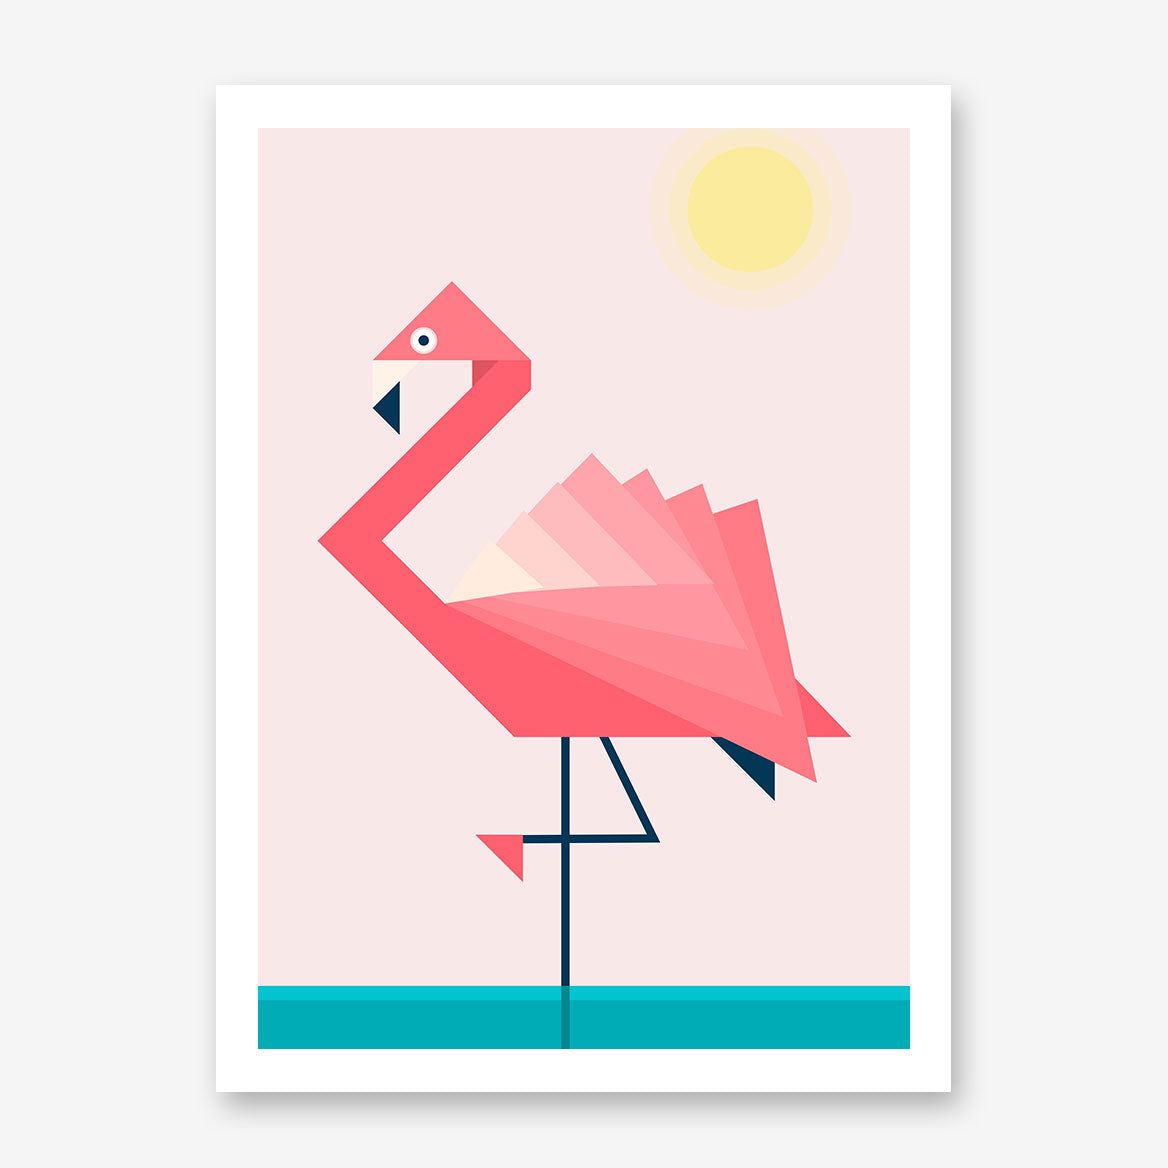 Geometric poster print with pink flamingo (left), on pink and blue background.